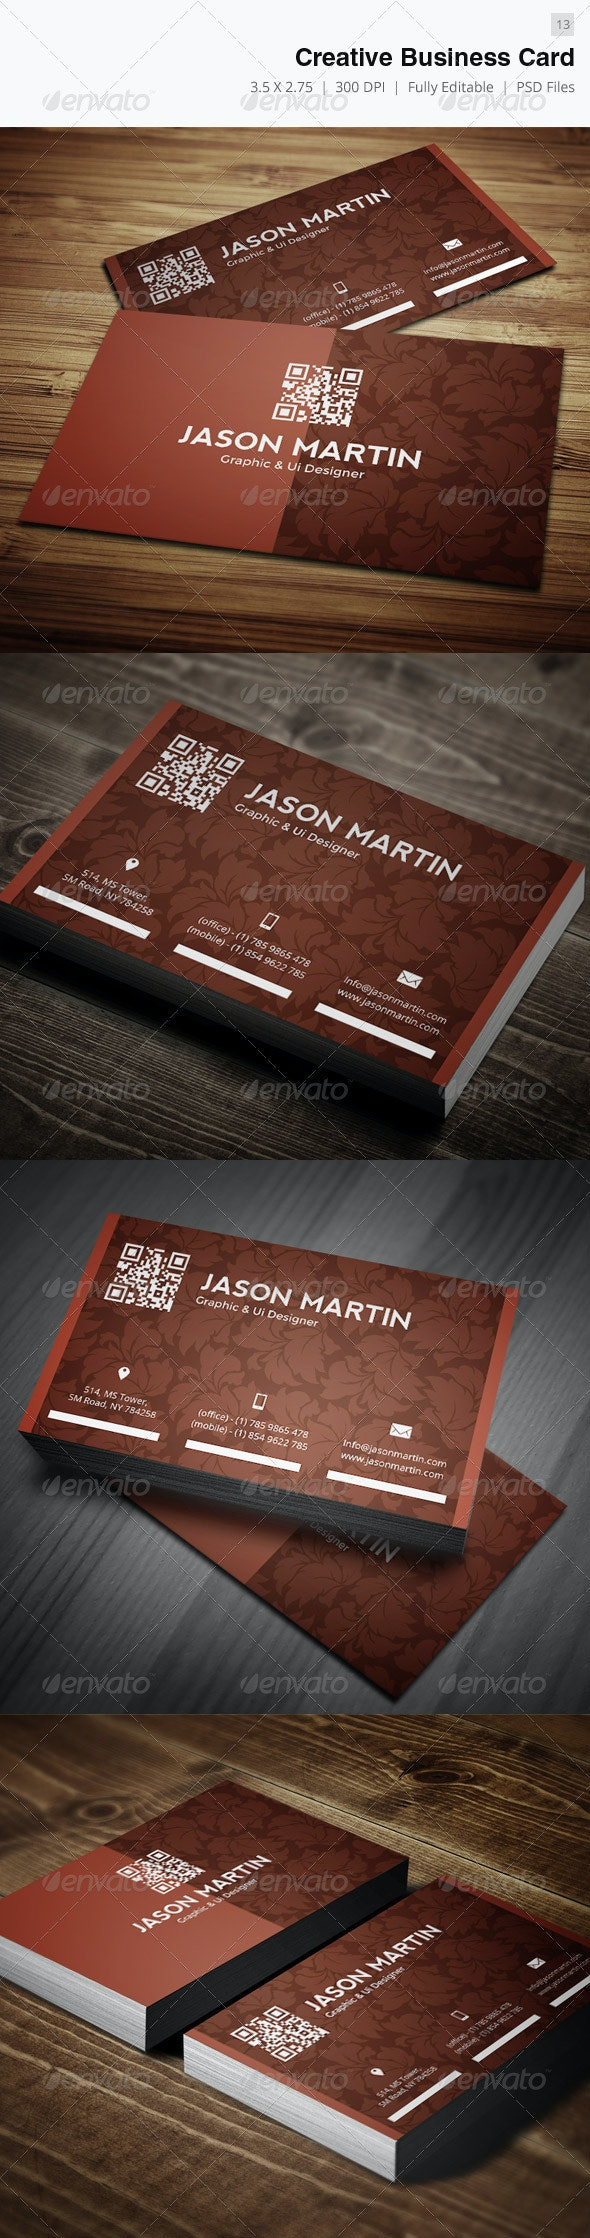 Creative Business Card - 13 - Creative Business Cards